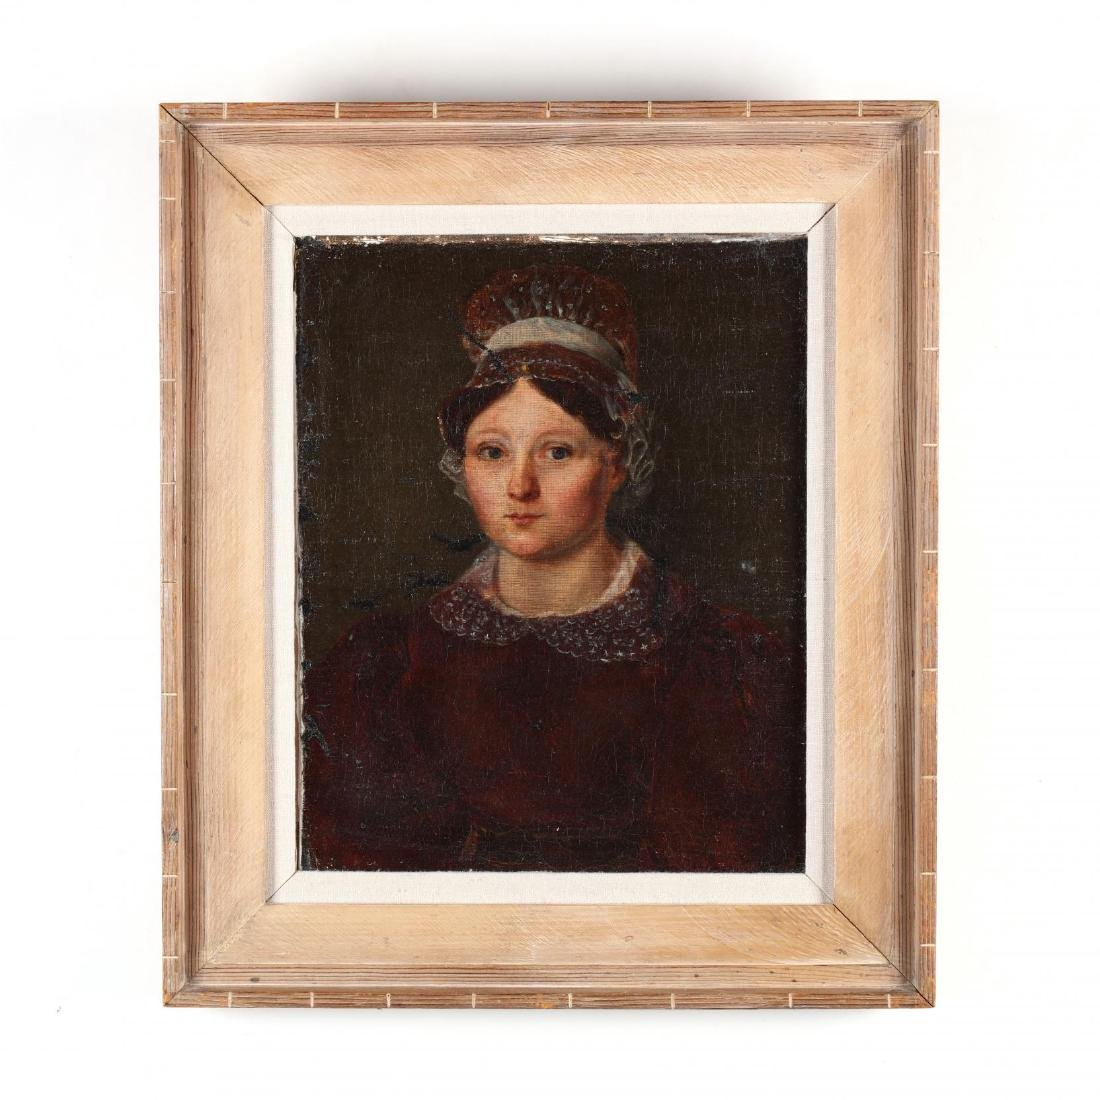 Antique Portrait of a Woman Wearing Red Dress and